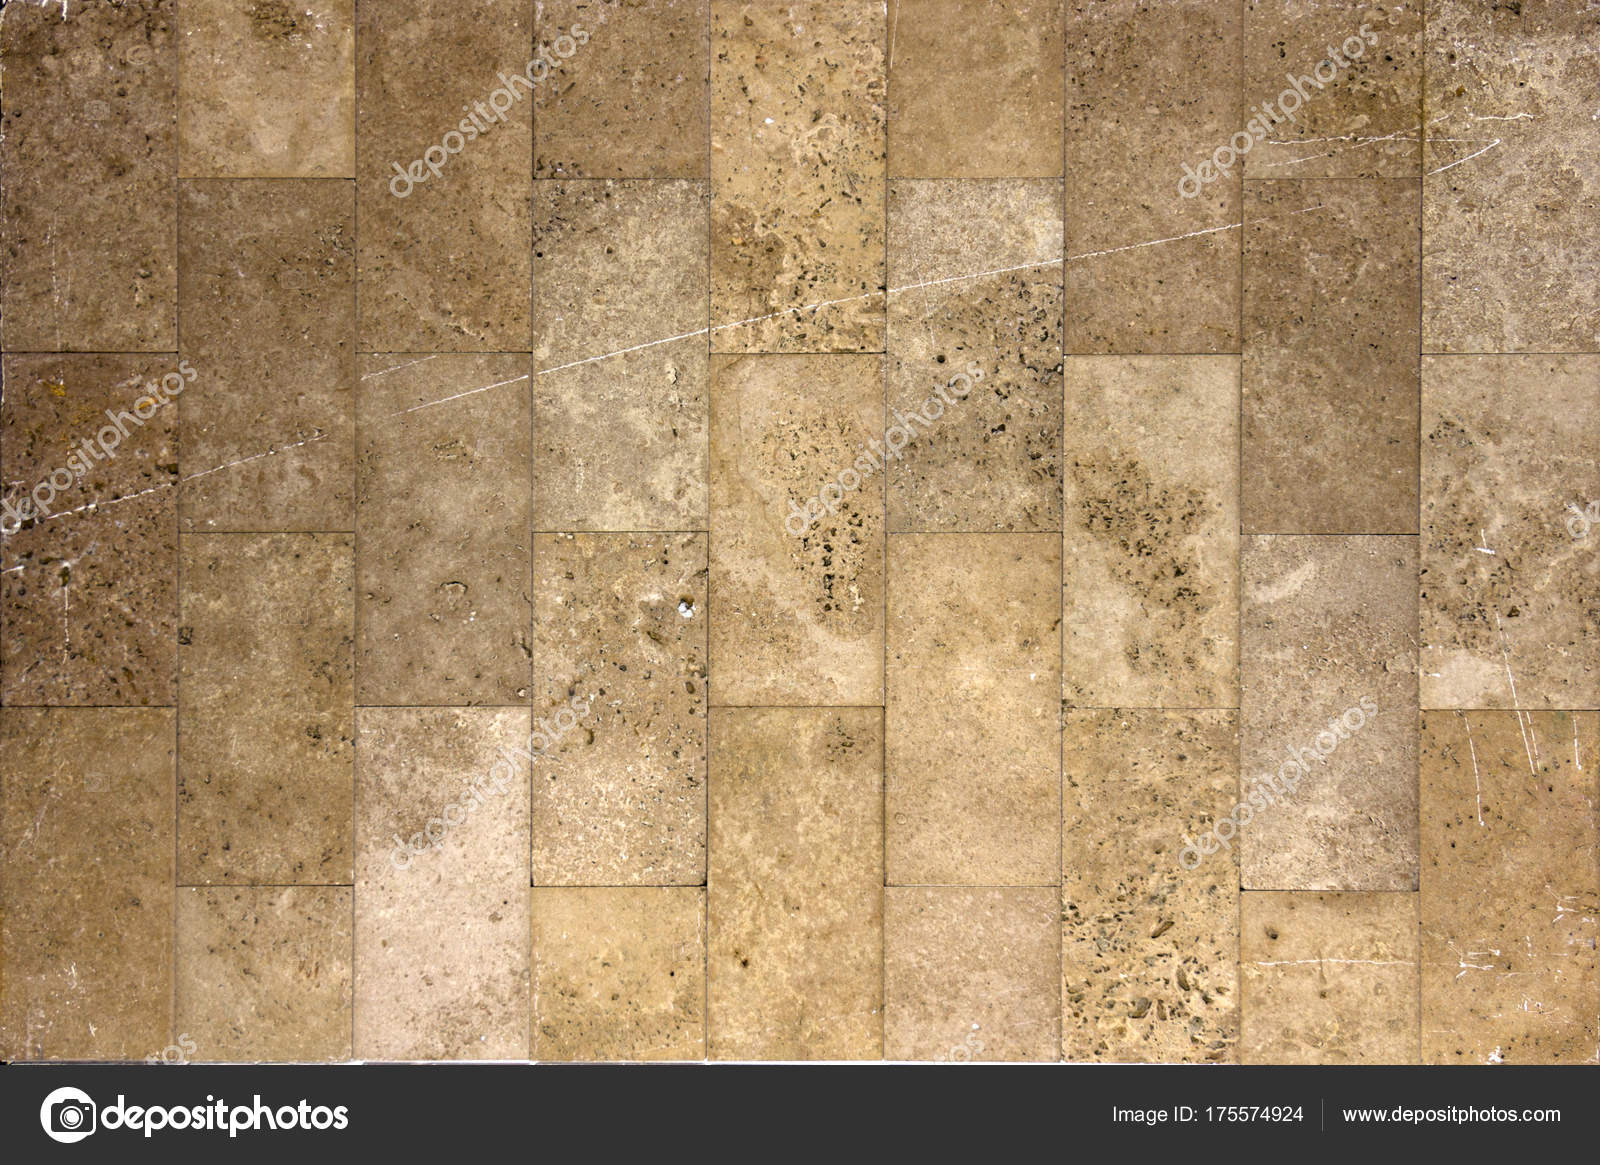 Marble texture decorative brick, wall tiles made of natural stone ...